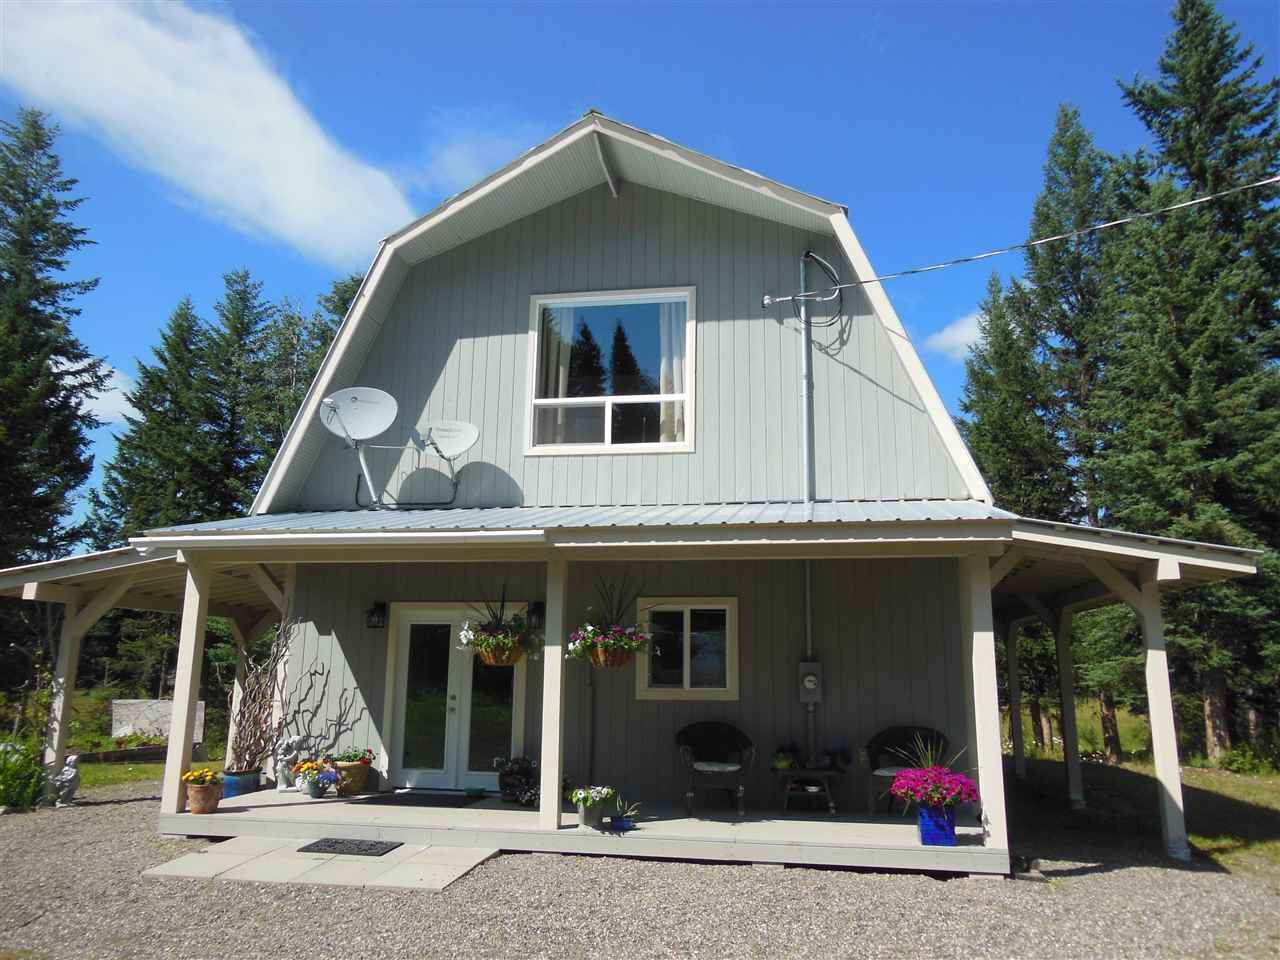 Main Photo: 3535 WESTWICK PIT Road: 150 Mile House House for sale (Williams Lake (Zone 27))  : MLS®# R2488772